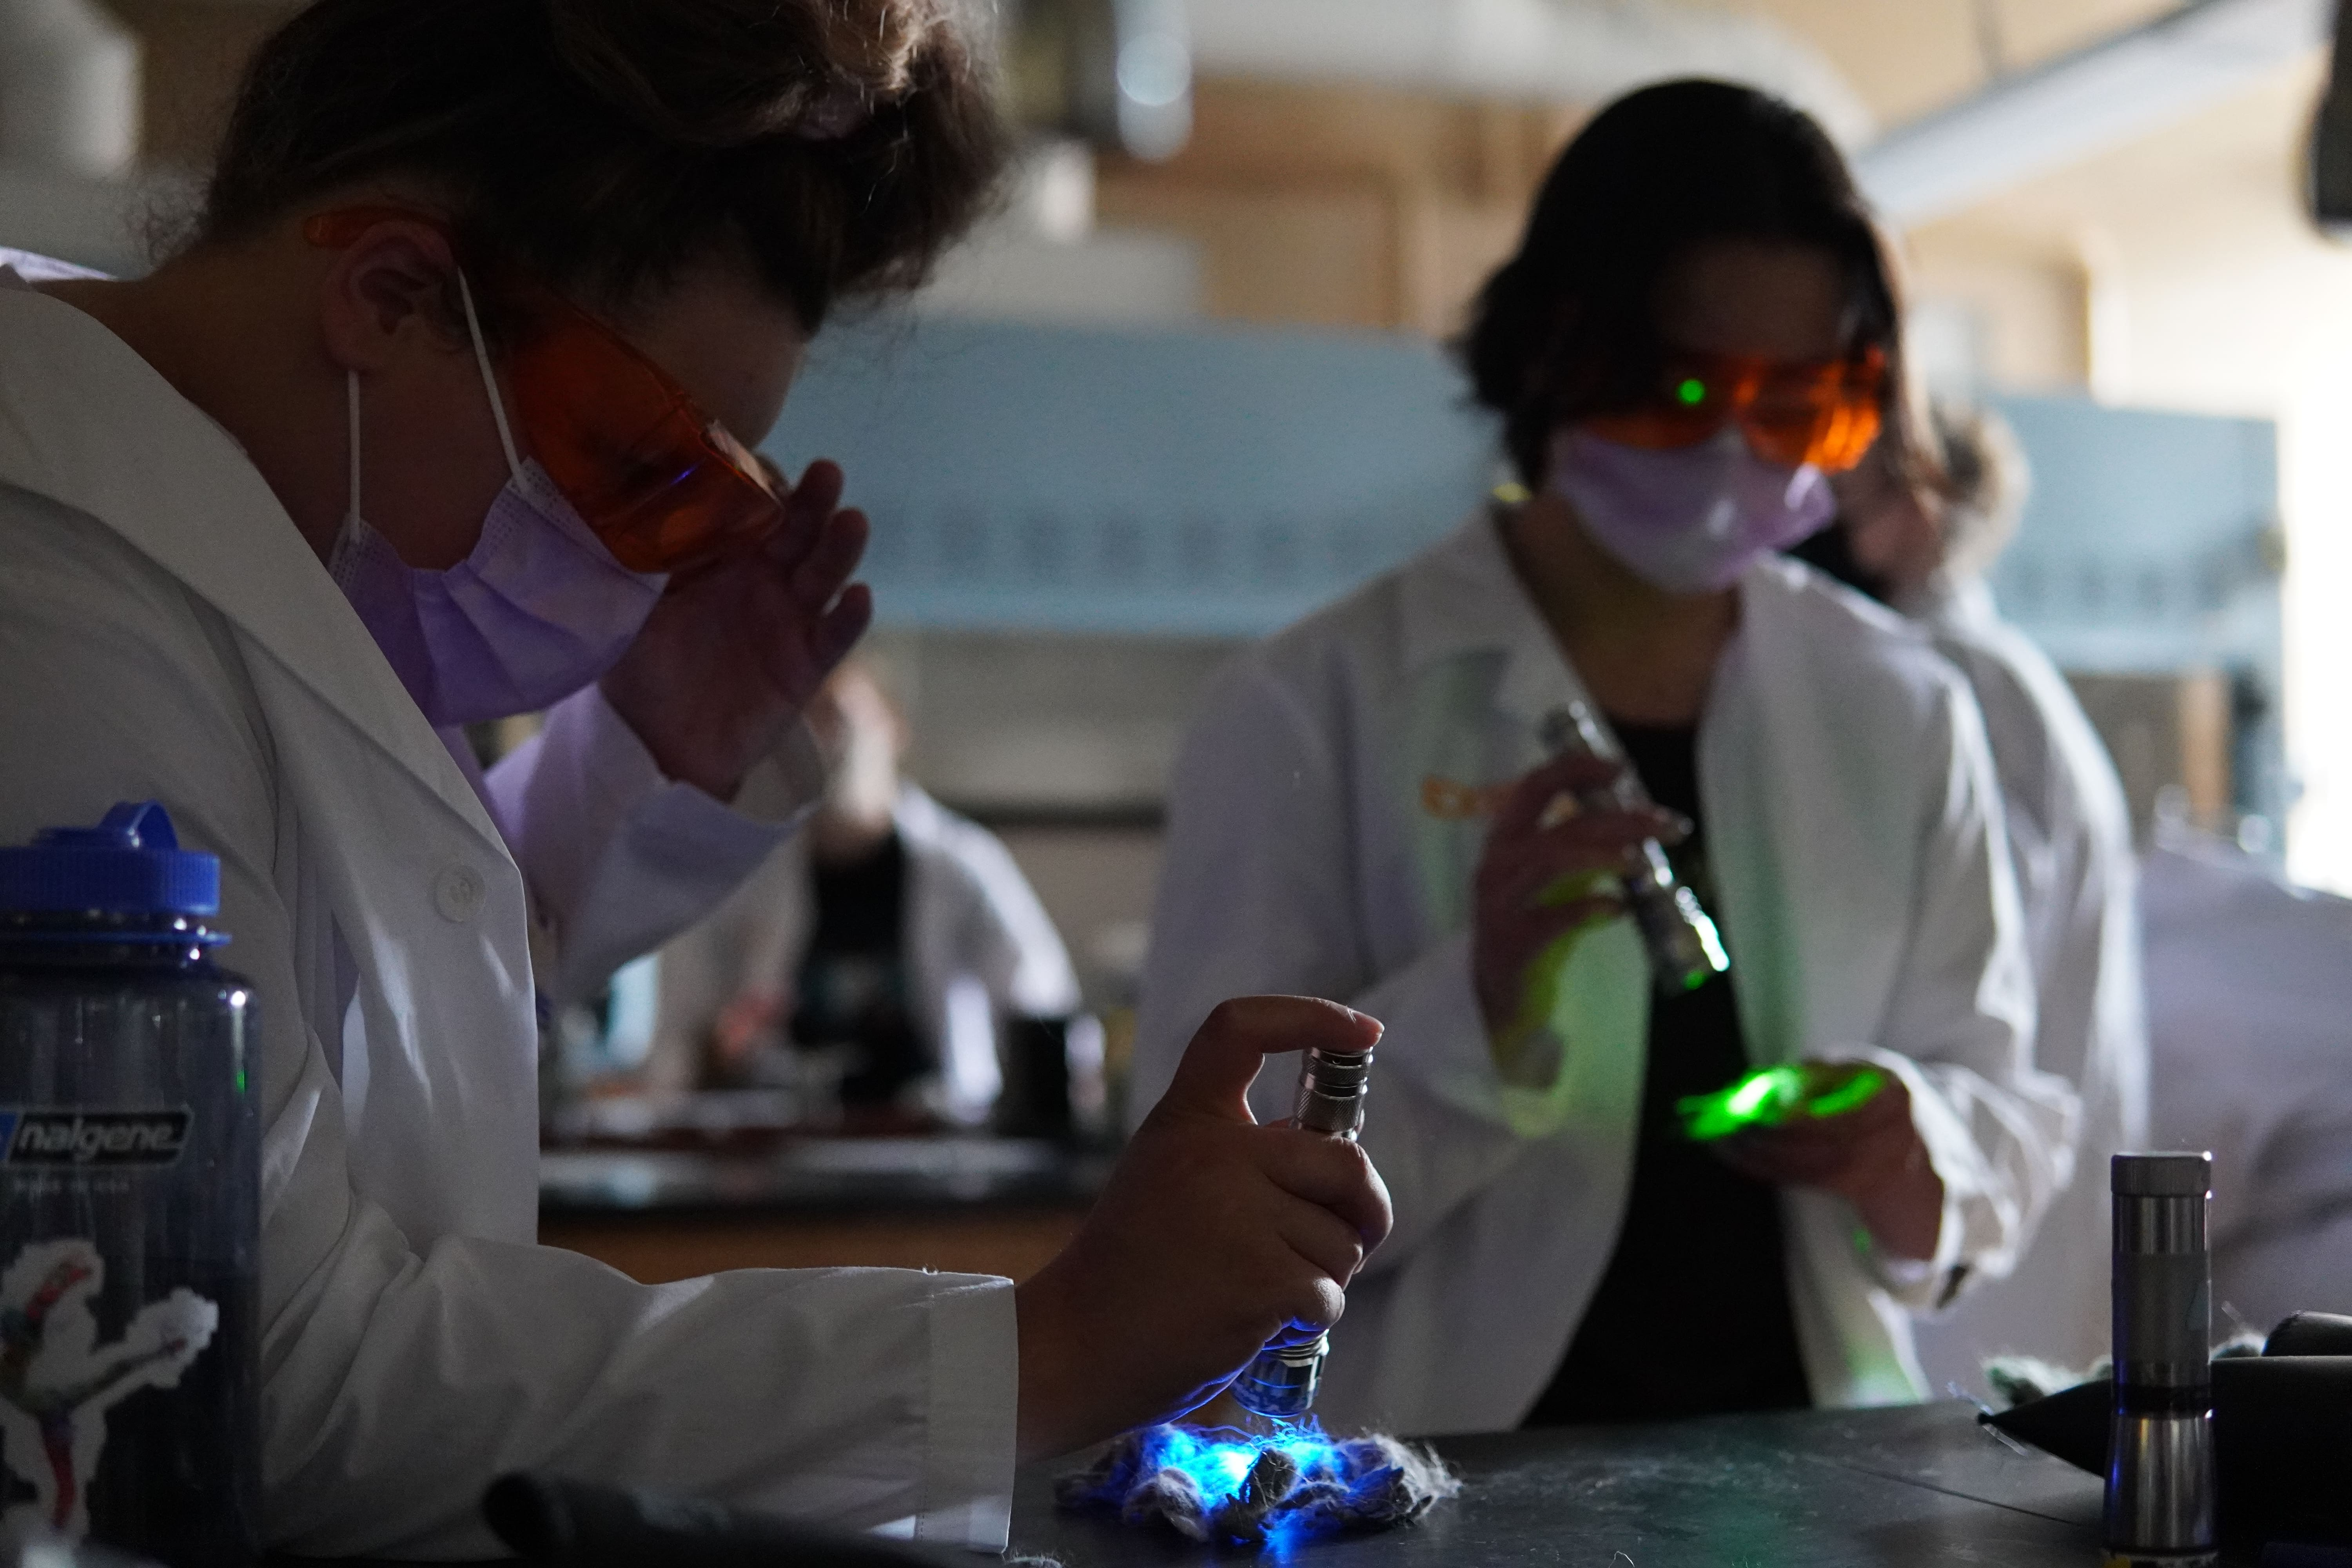 Two students stand in a dark room and use different colored flashlights to analyze materials in the hand.